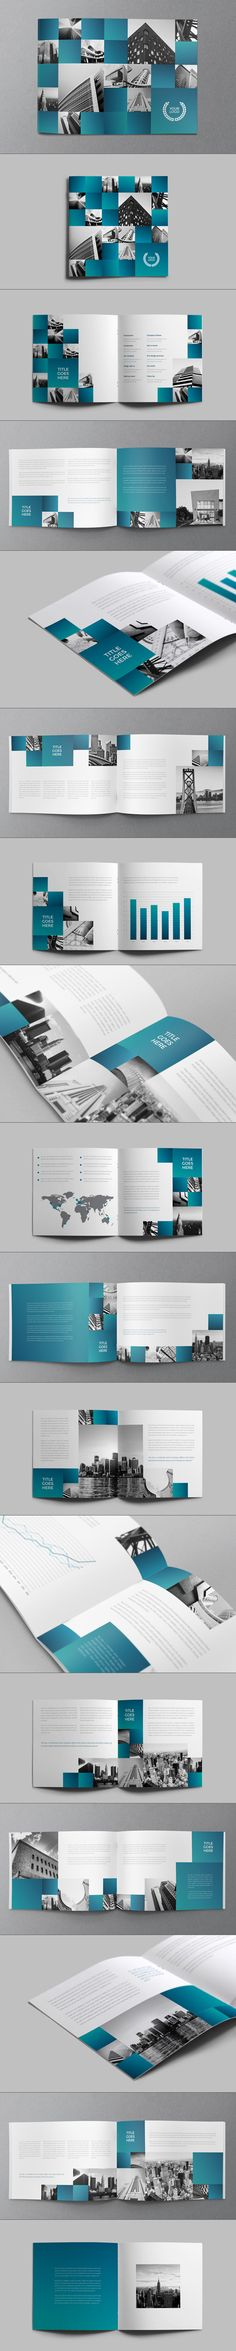 Professional Brochure Designs for Corporate Business | #brochuredesign | #Logodesignguru